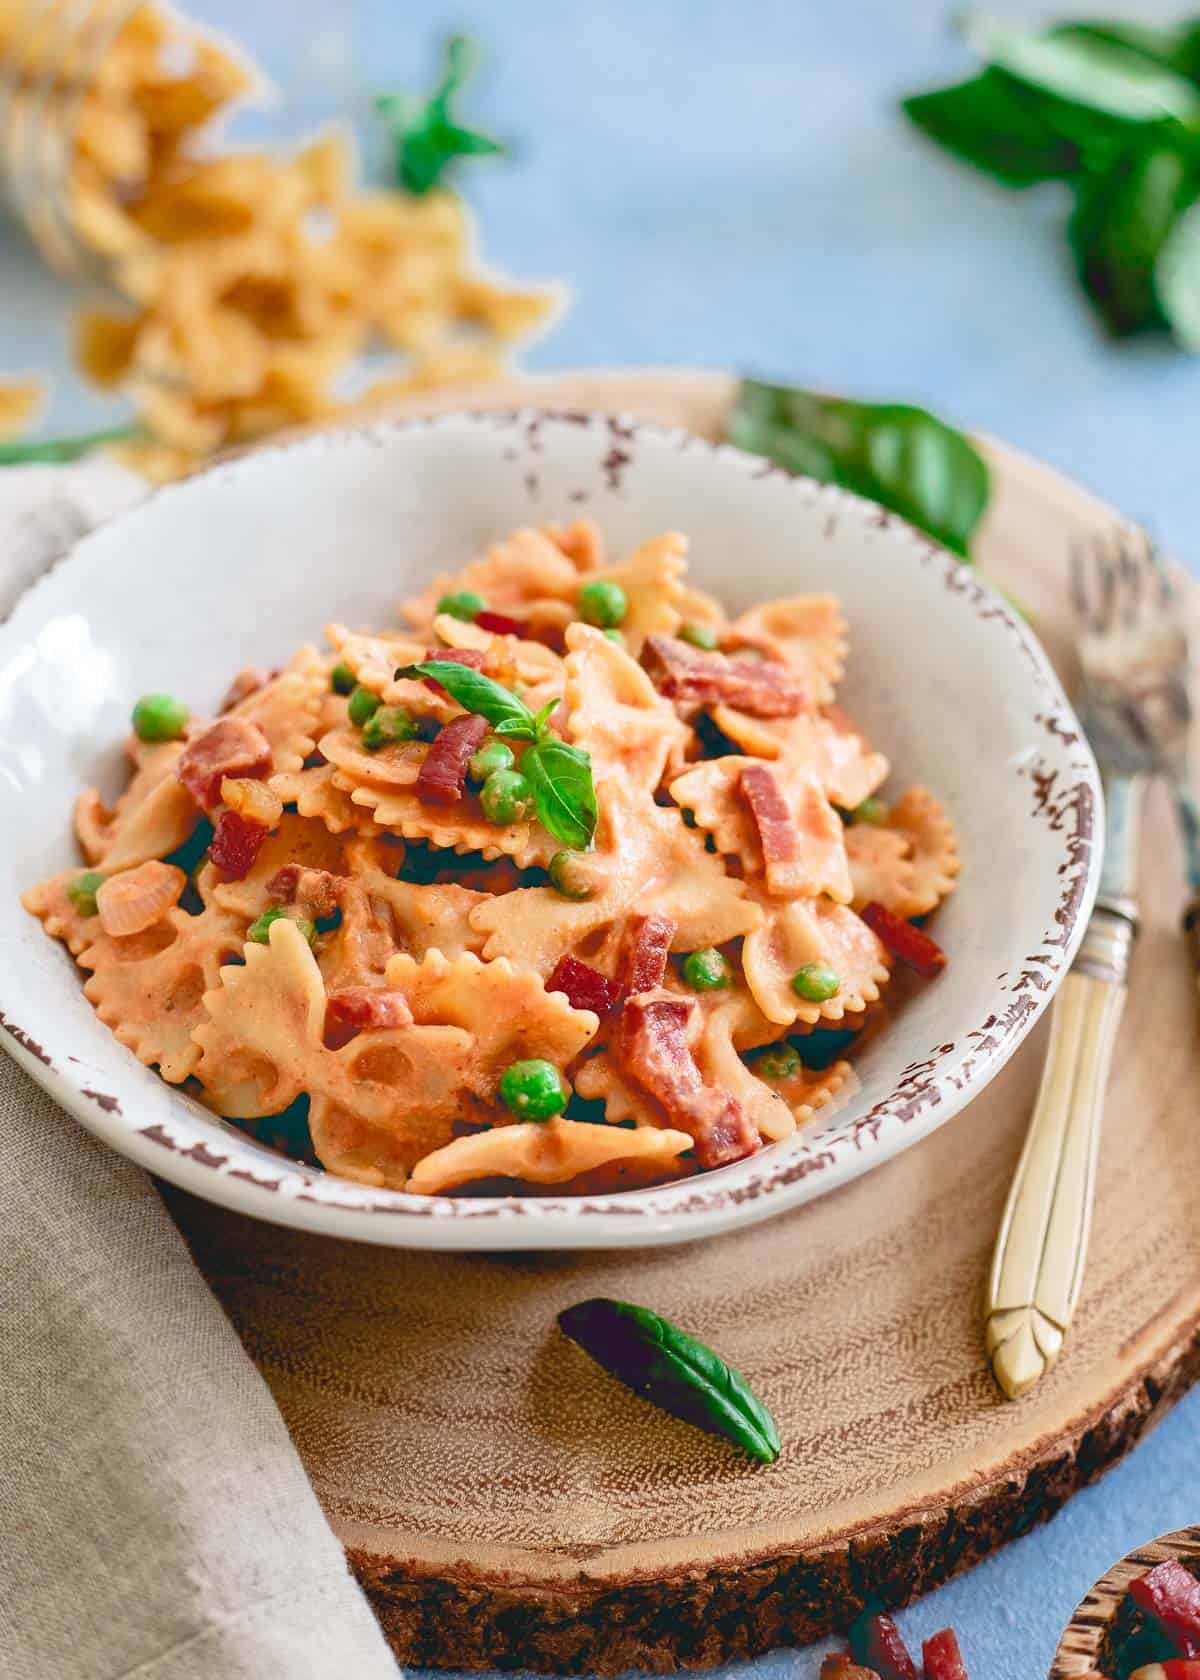 Creamy tomato sauce made right in your blender coats this easy pasta dish with peas and crispy prosciutto.